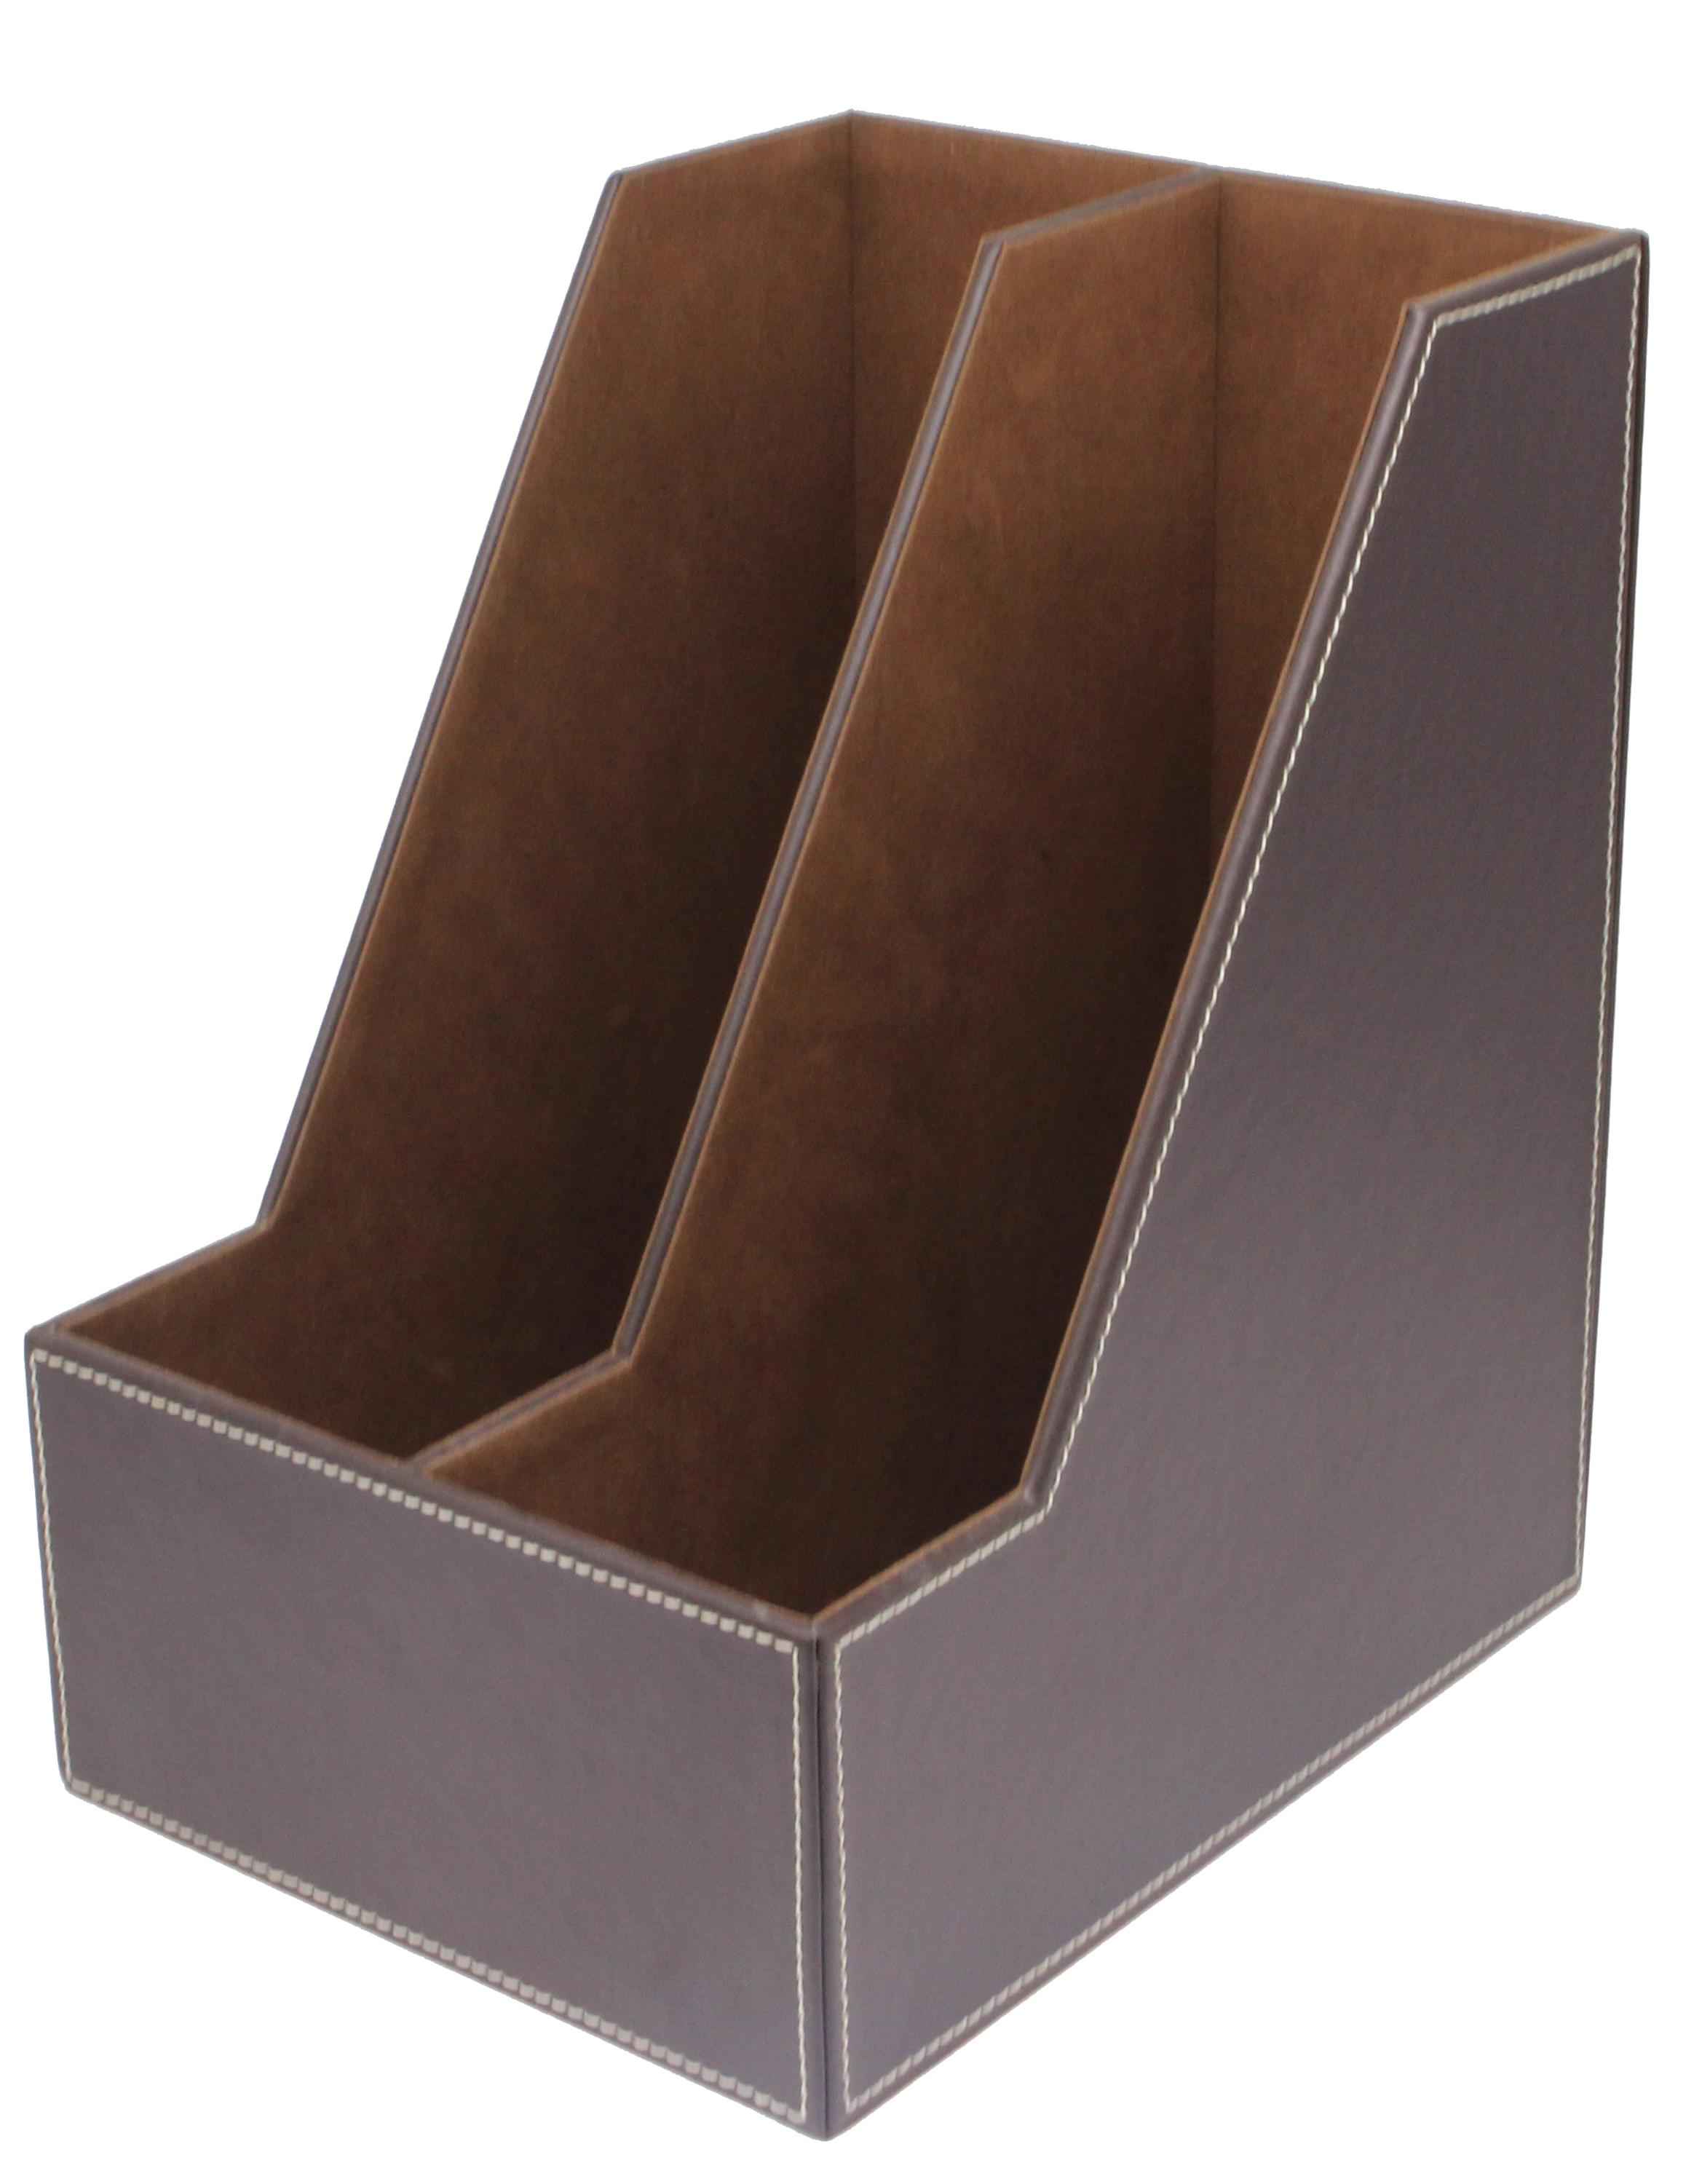 book stand magazine holder office desk organizer file document